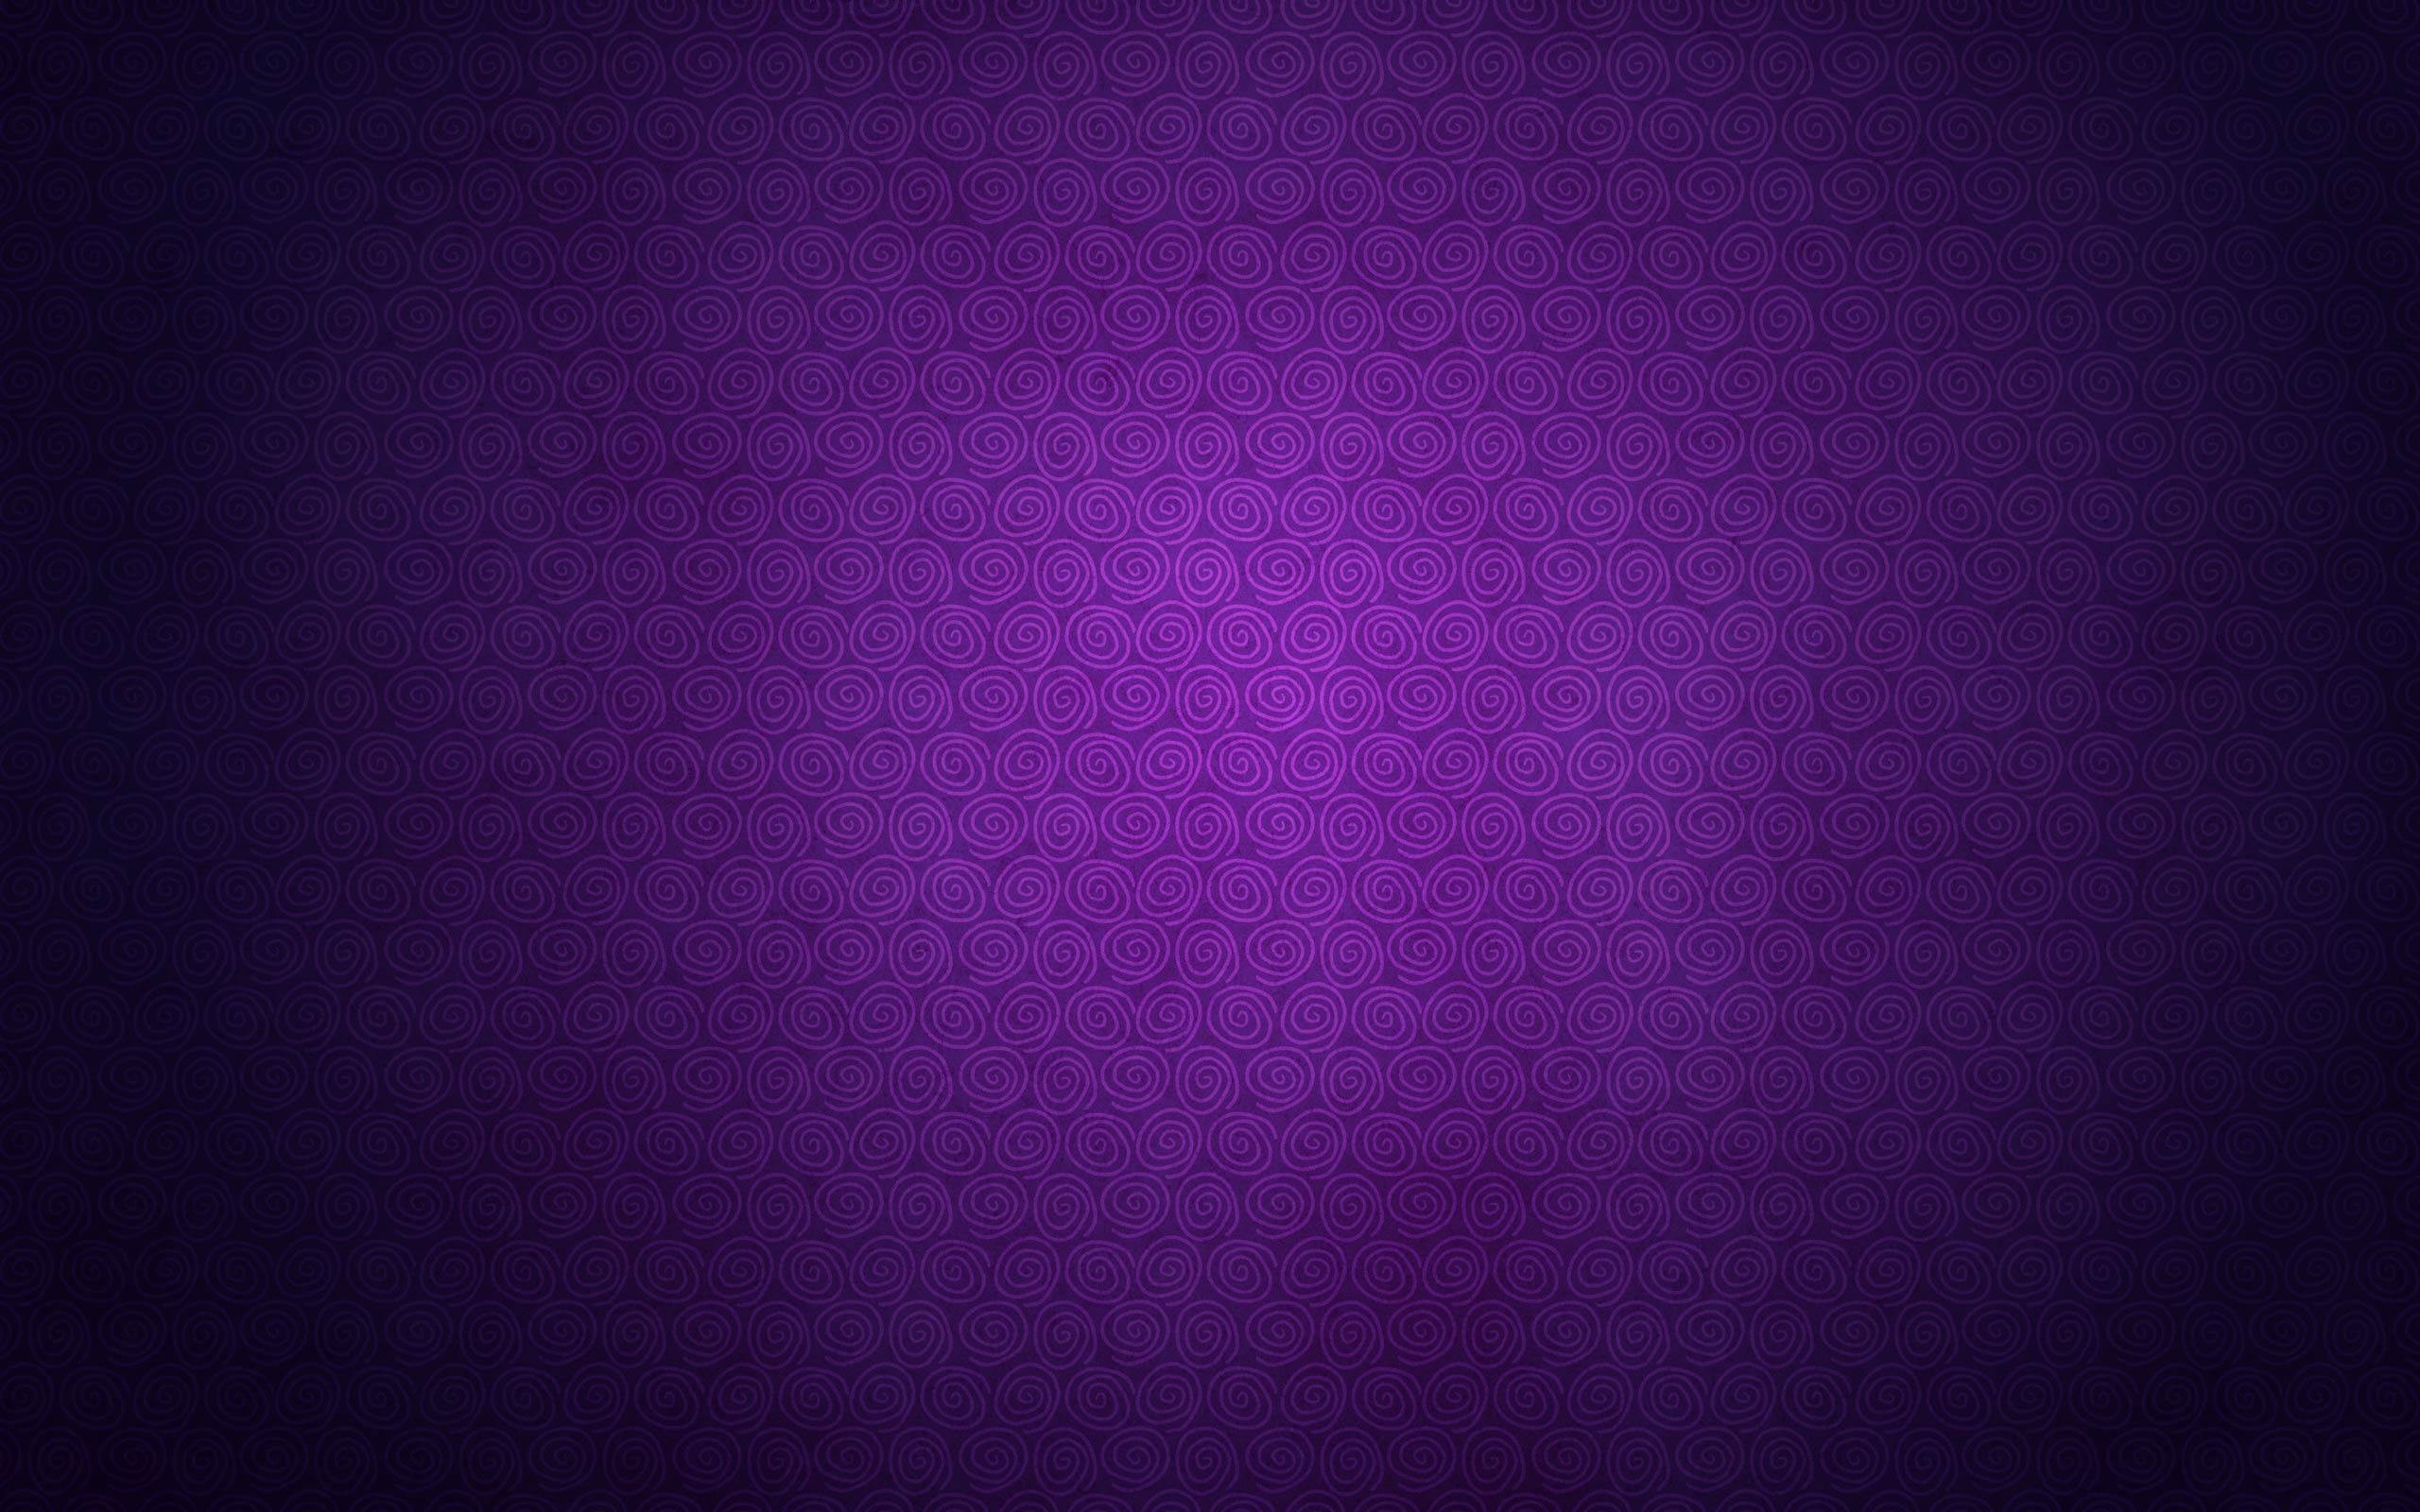 Light Purple Pattern Wallpapers Backgrounds 11928 Full HD .